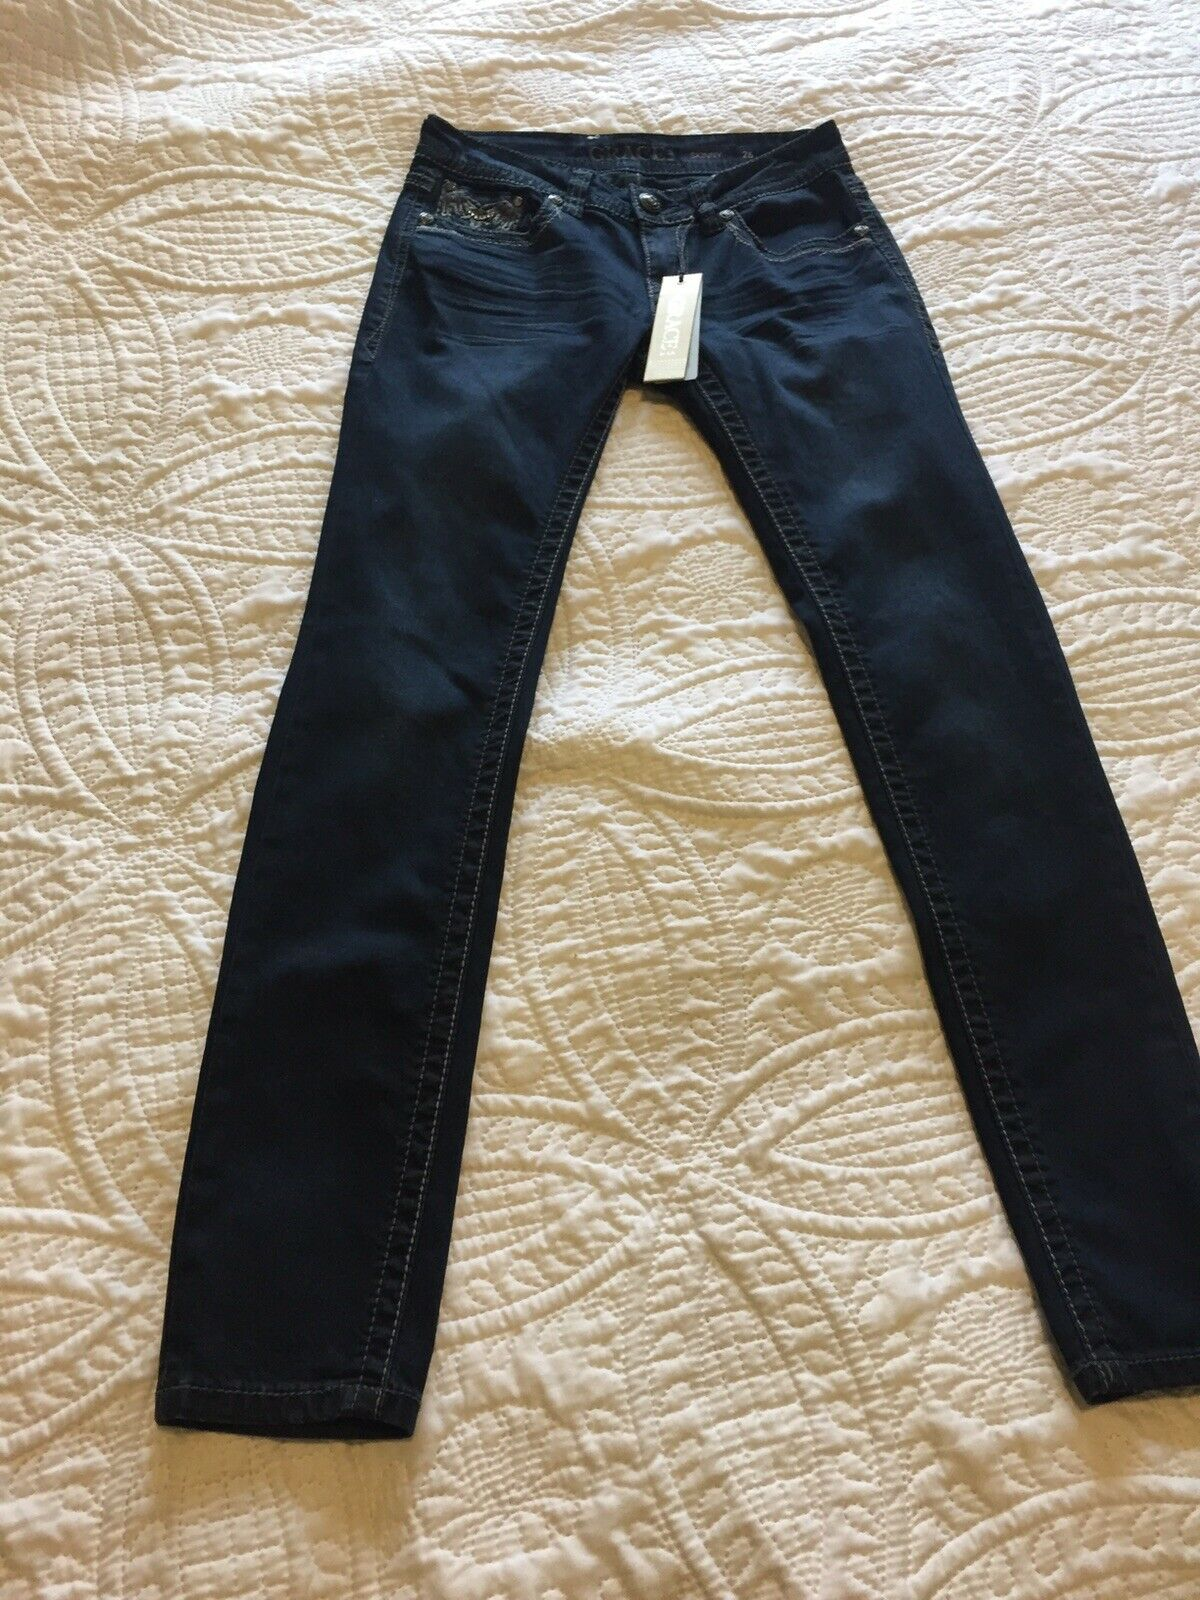 GRACE IN LA SKINNY JEANS Embroidery embellishment size 26